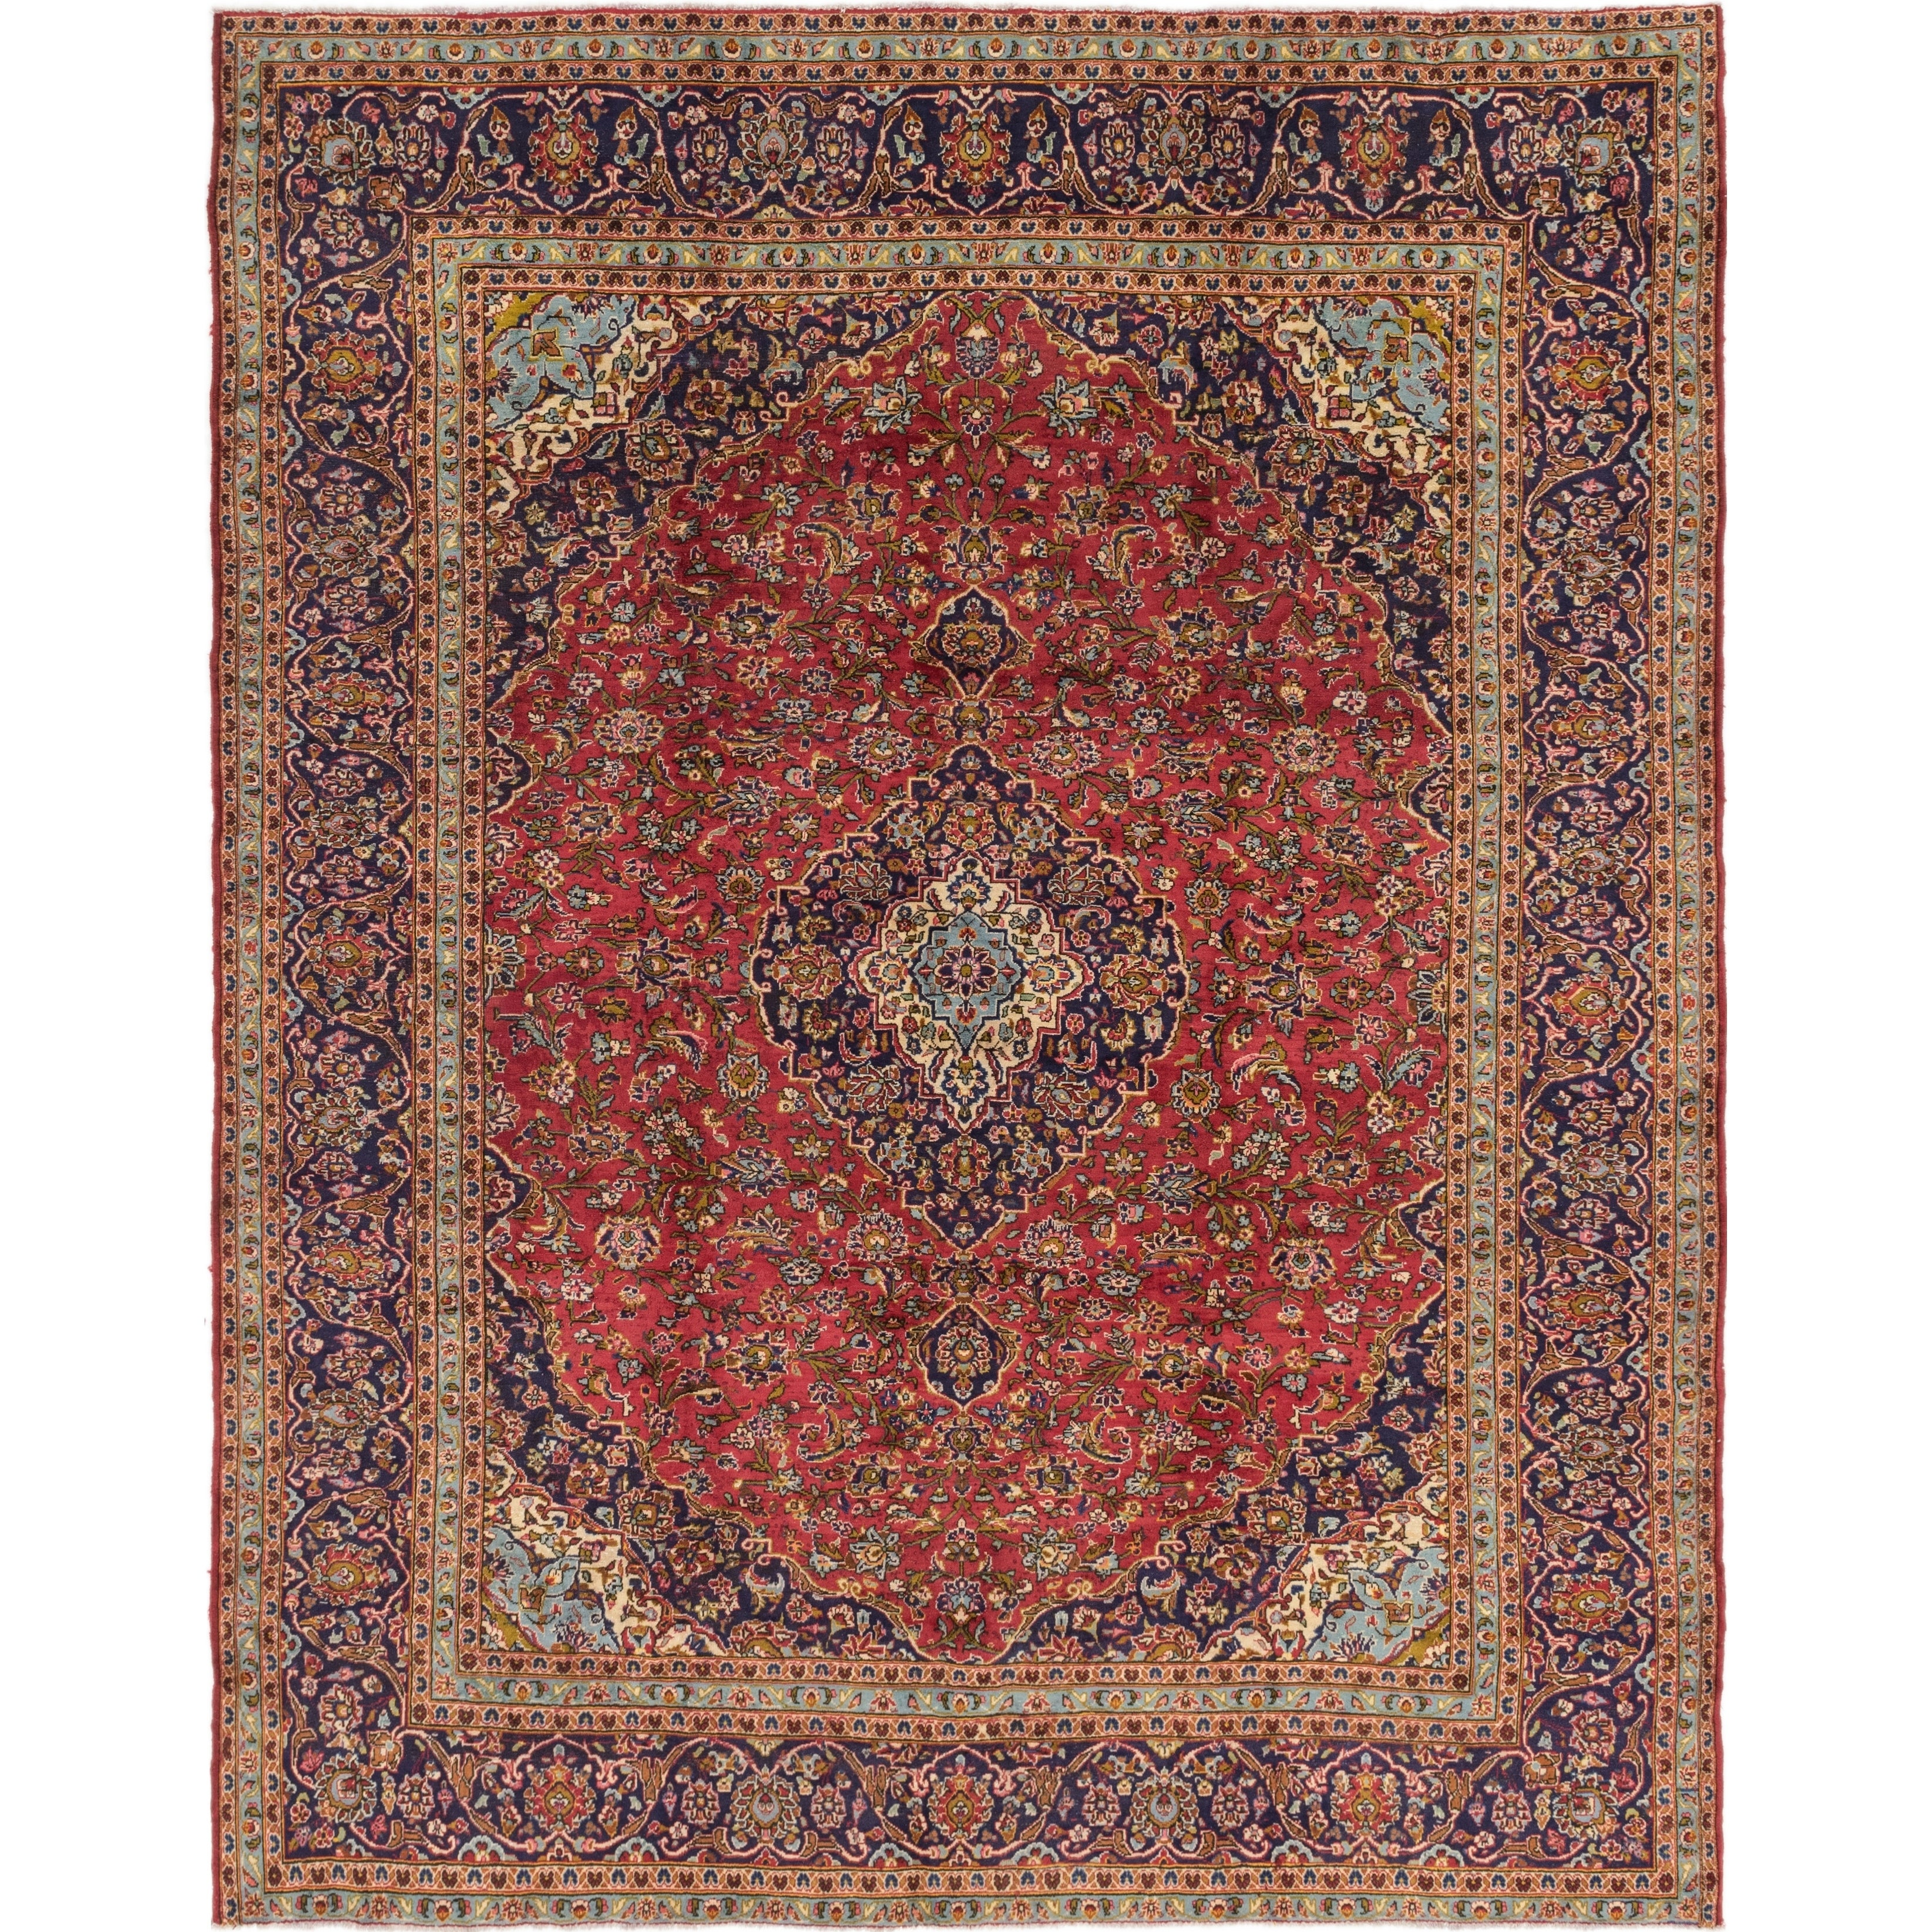 Hand Knotted Kashan Semi Antique Wool Area Rug - 9 10 x 12 2 (Red - 9 10 x 12 2)